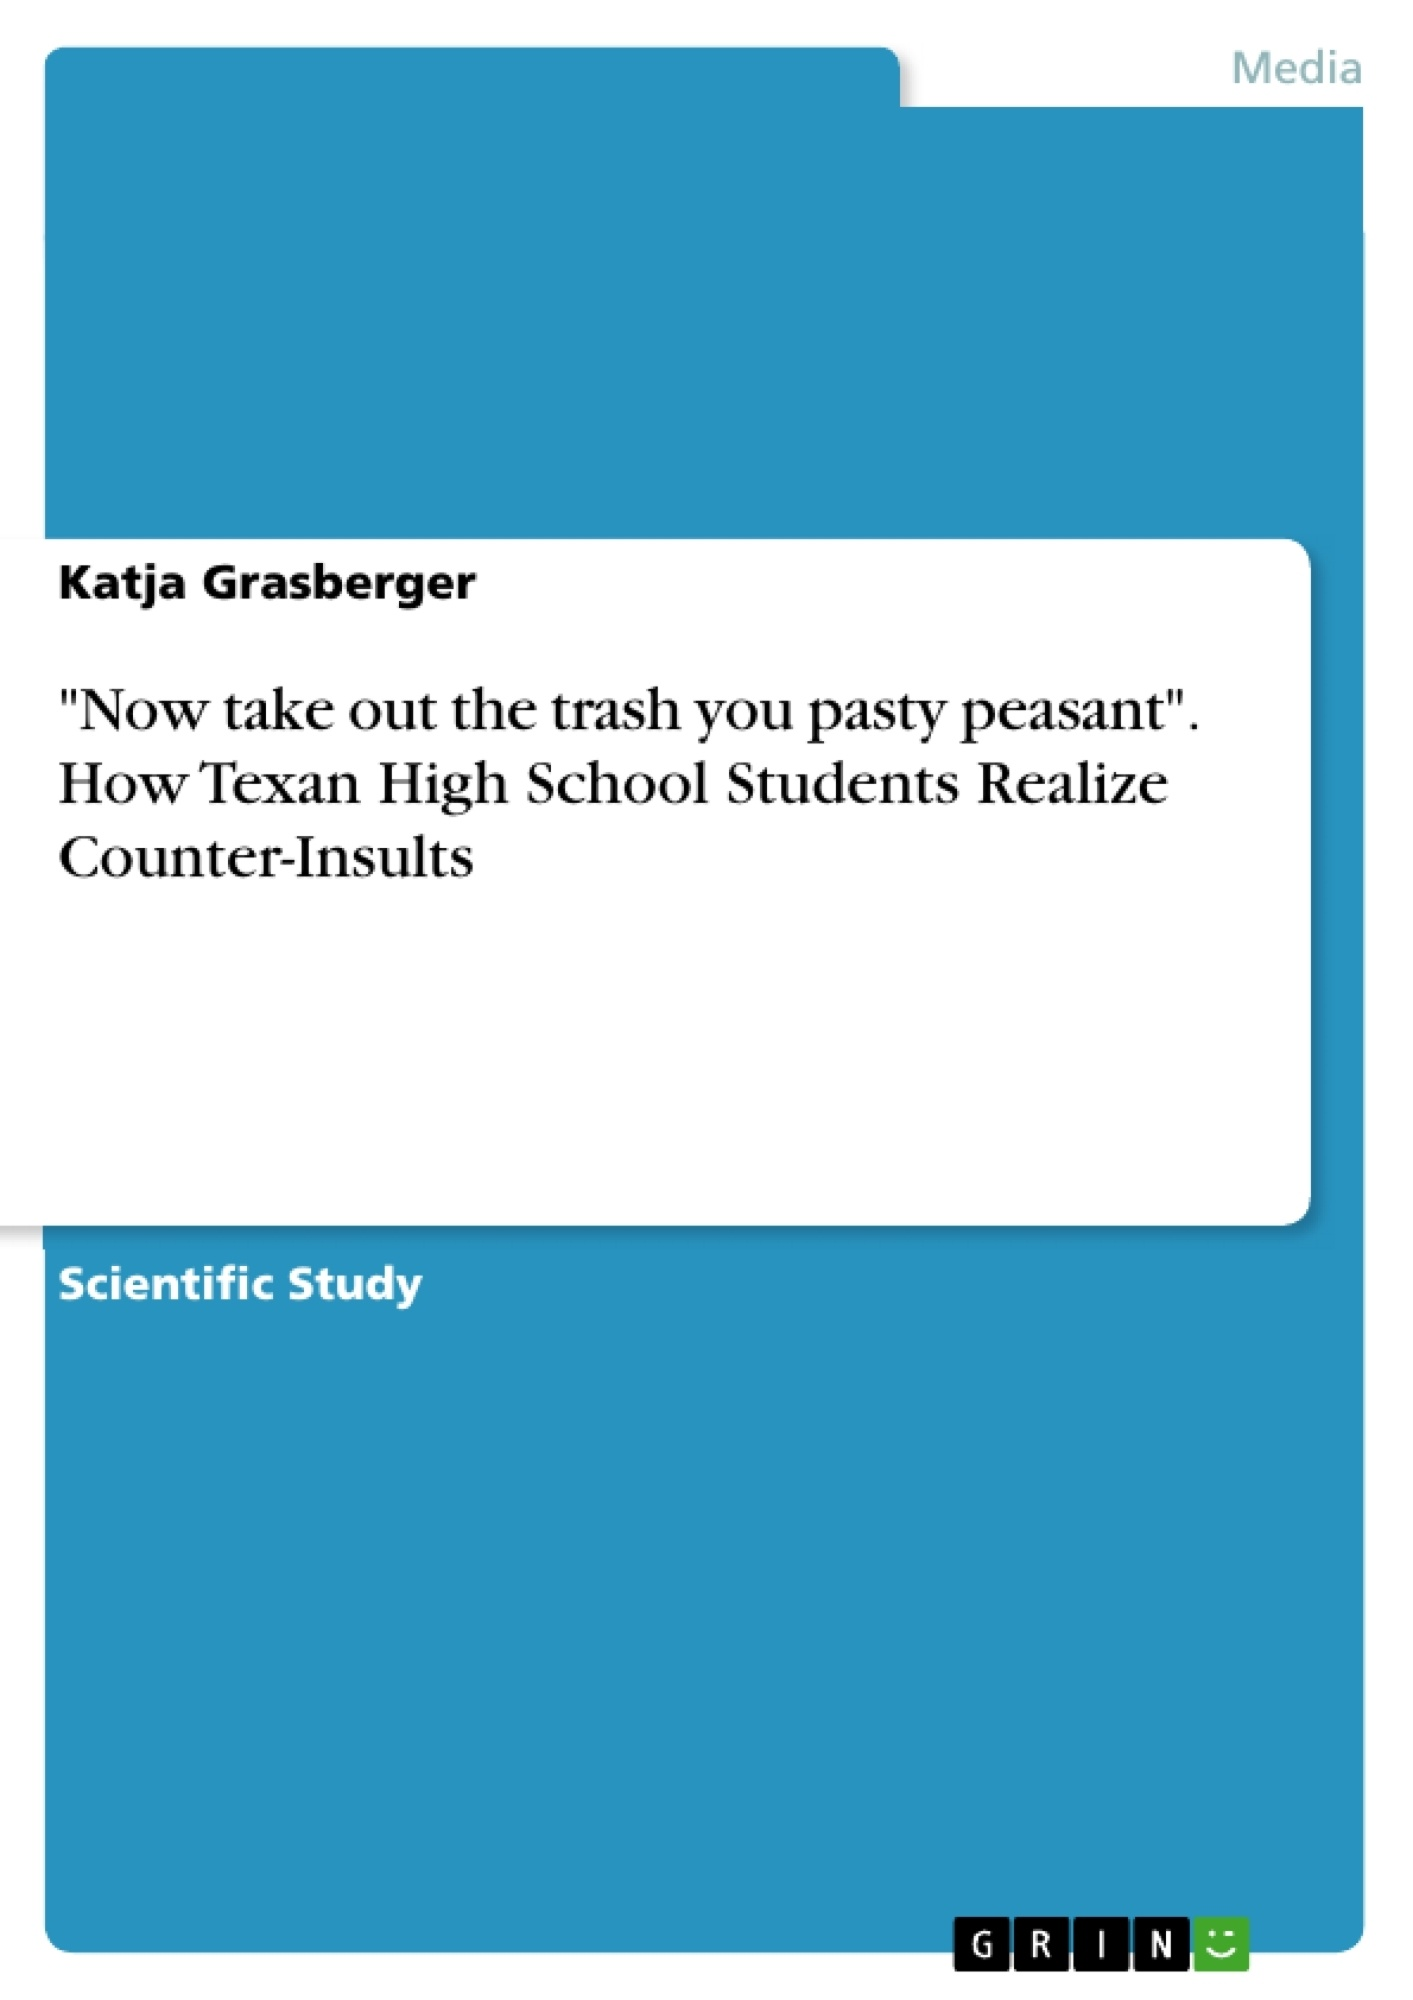 """Title: """"Now take out the trash you pasty peasant"""". How Texan High School Students Realize Counter-Insults"""